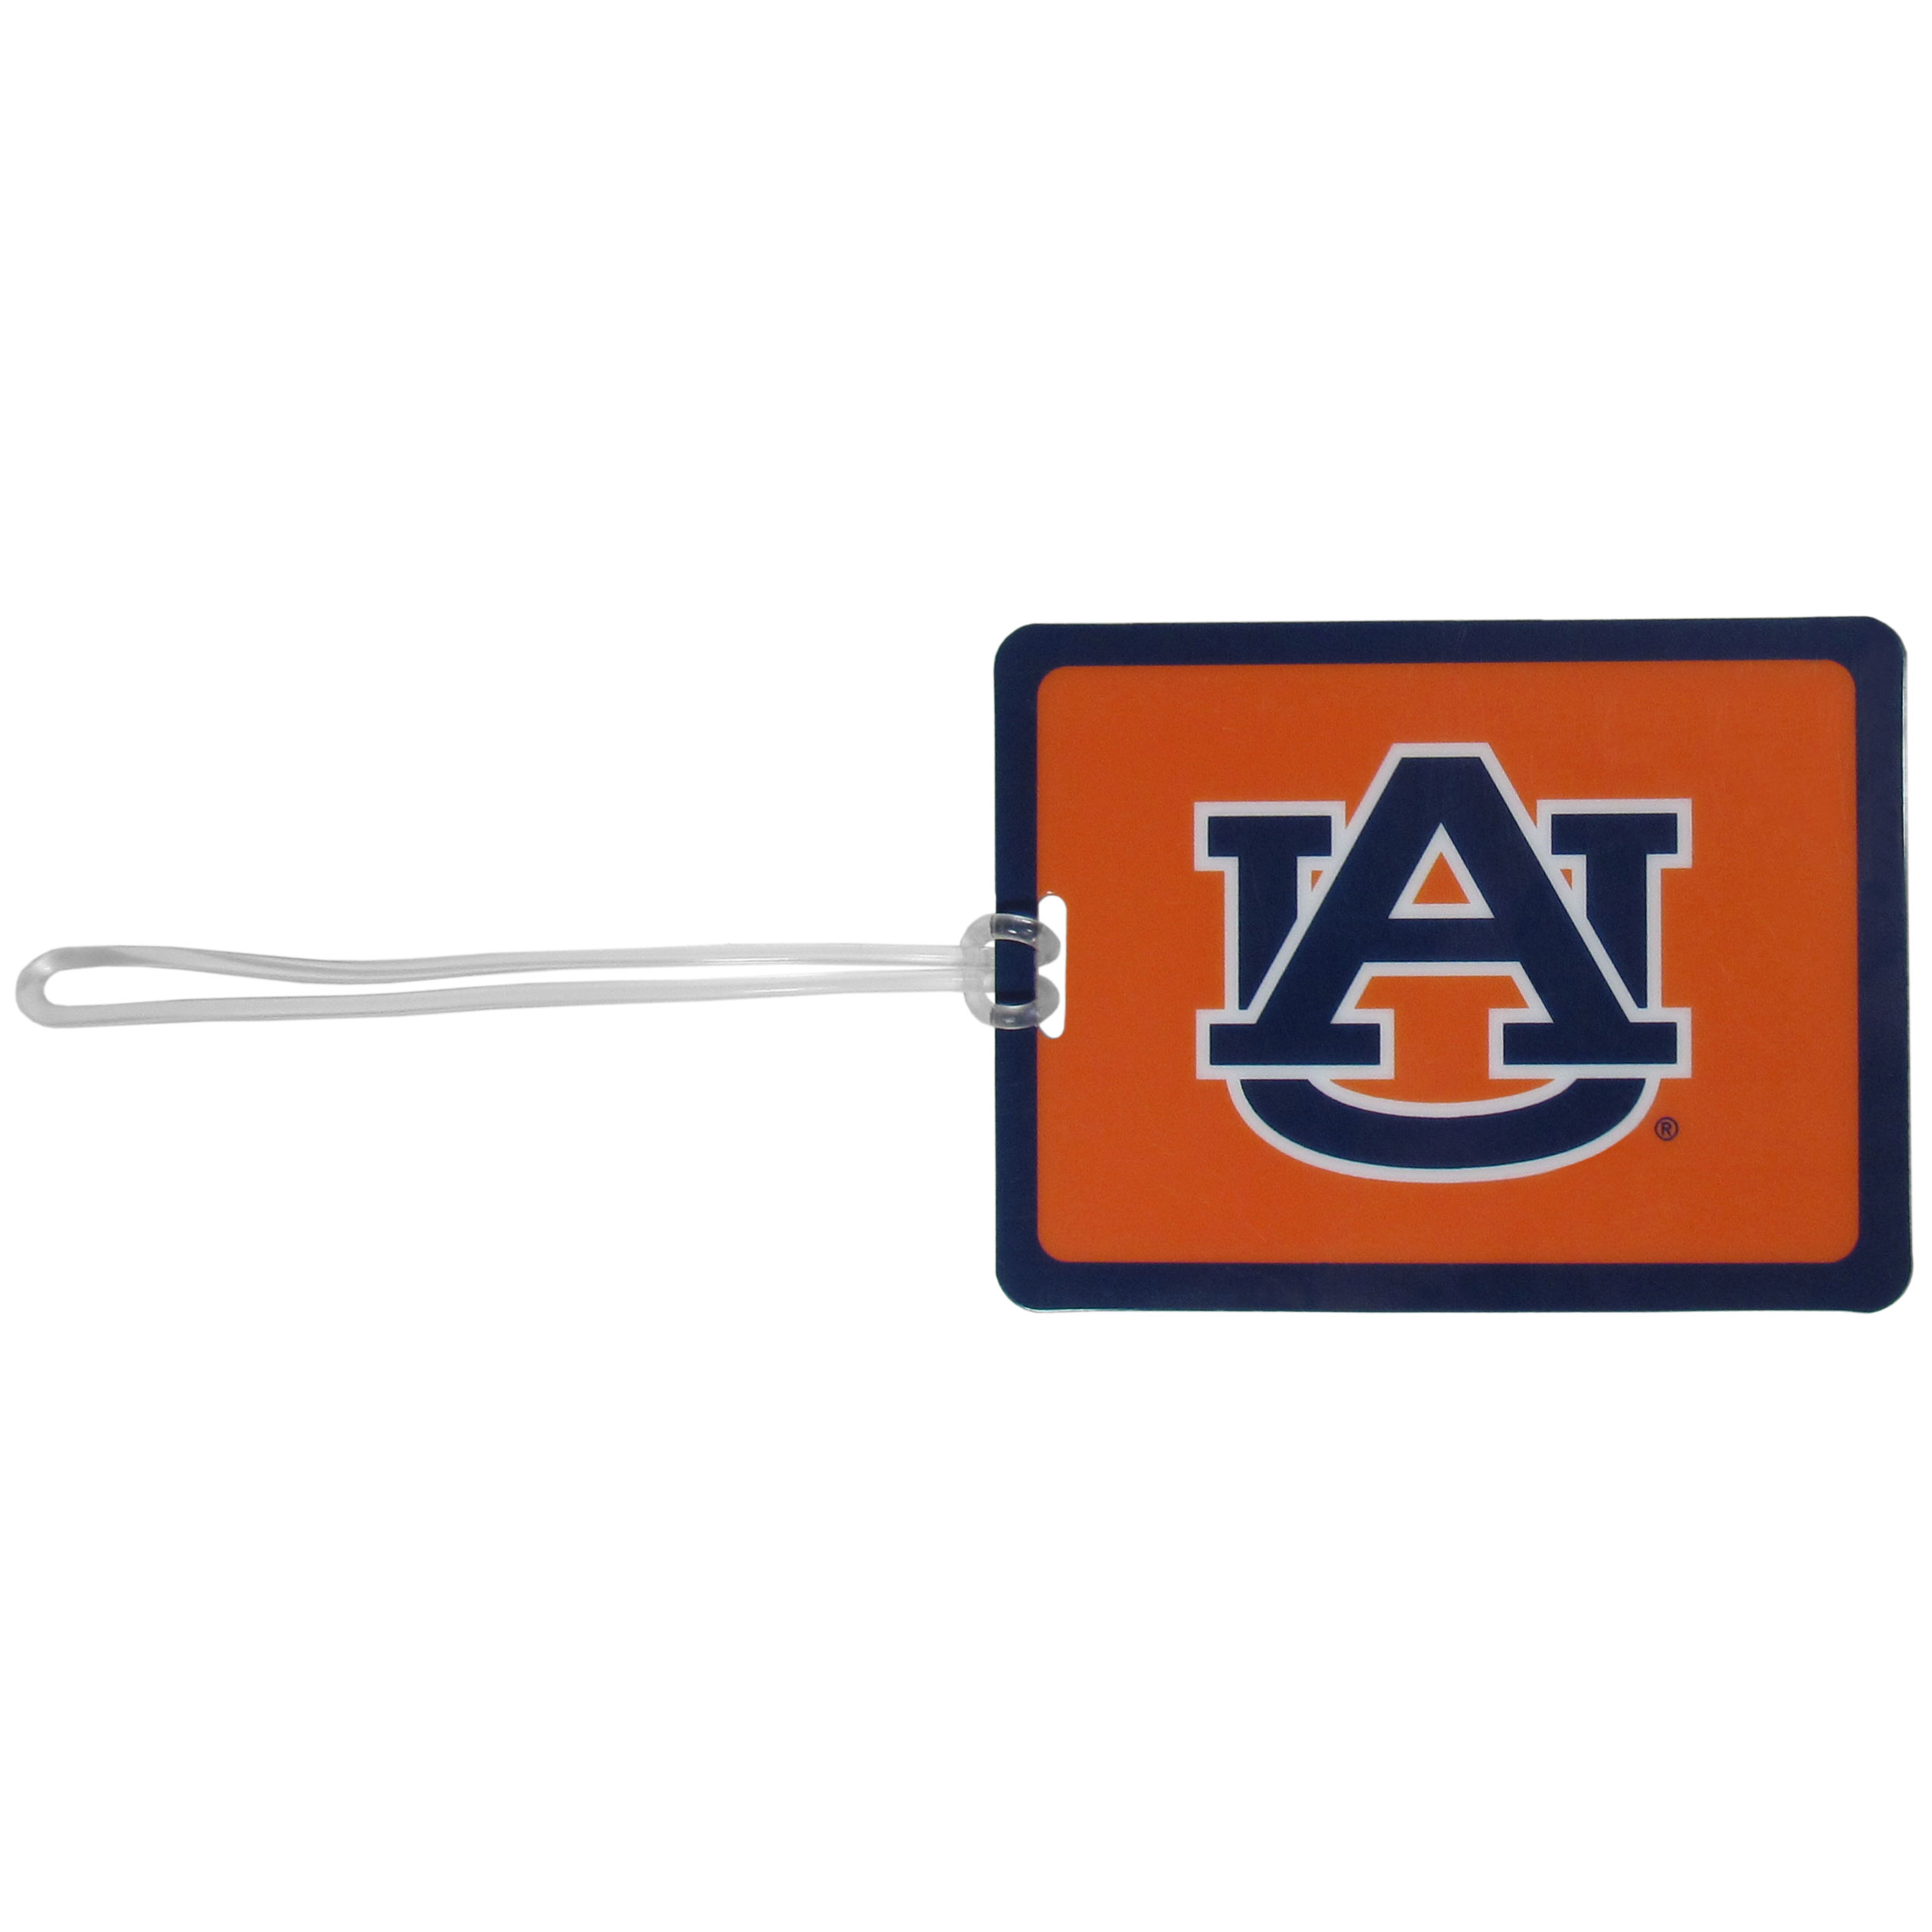 Auburn Tigers Vinyl Luggage Tag - Tired of trying to spot your suitcase or bag in a sea of luggage? Try our large and colorful Auburn Tigers luggage tag set. The tag is 4x3 inches and has a 5 inch cord to attach it easily to your bags, backpacks or luggage. The front of the tag features the team logo in a bright, team colored background and you can write you name, address and phone number on the back of the tag.